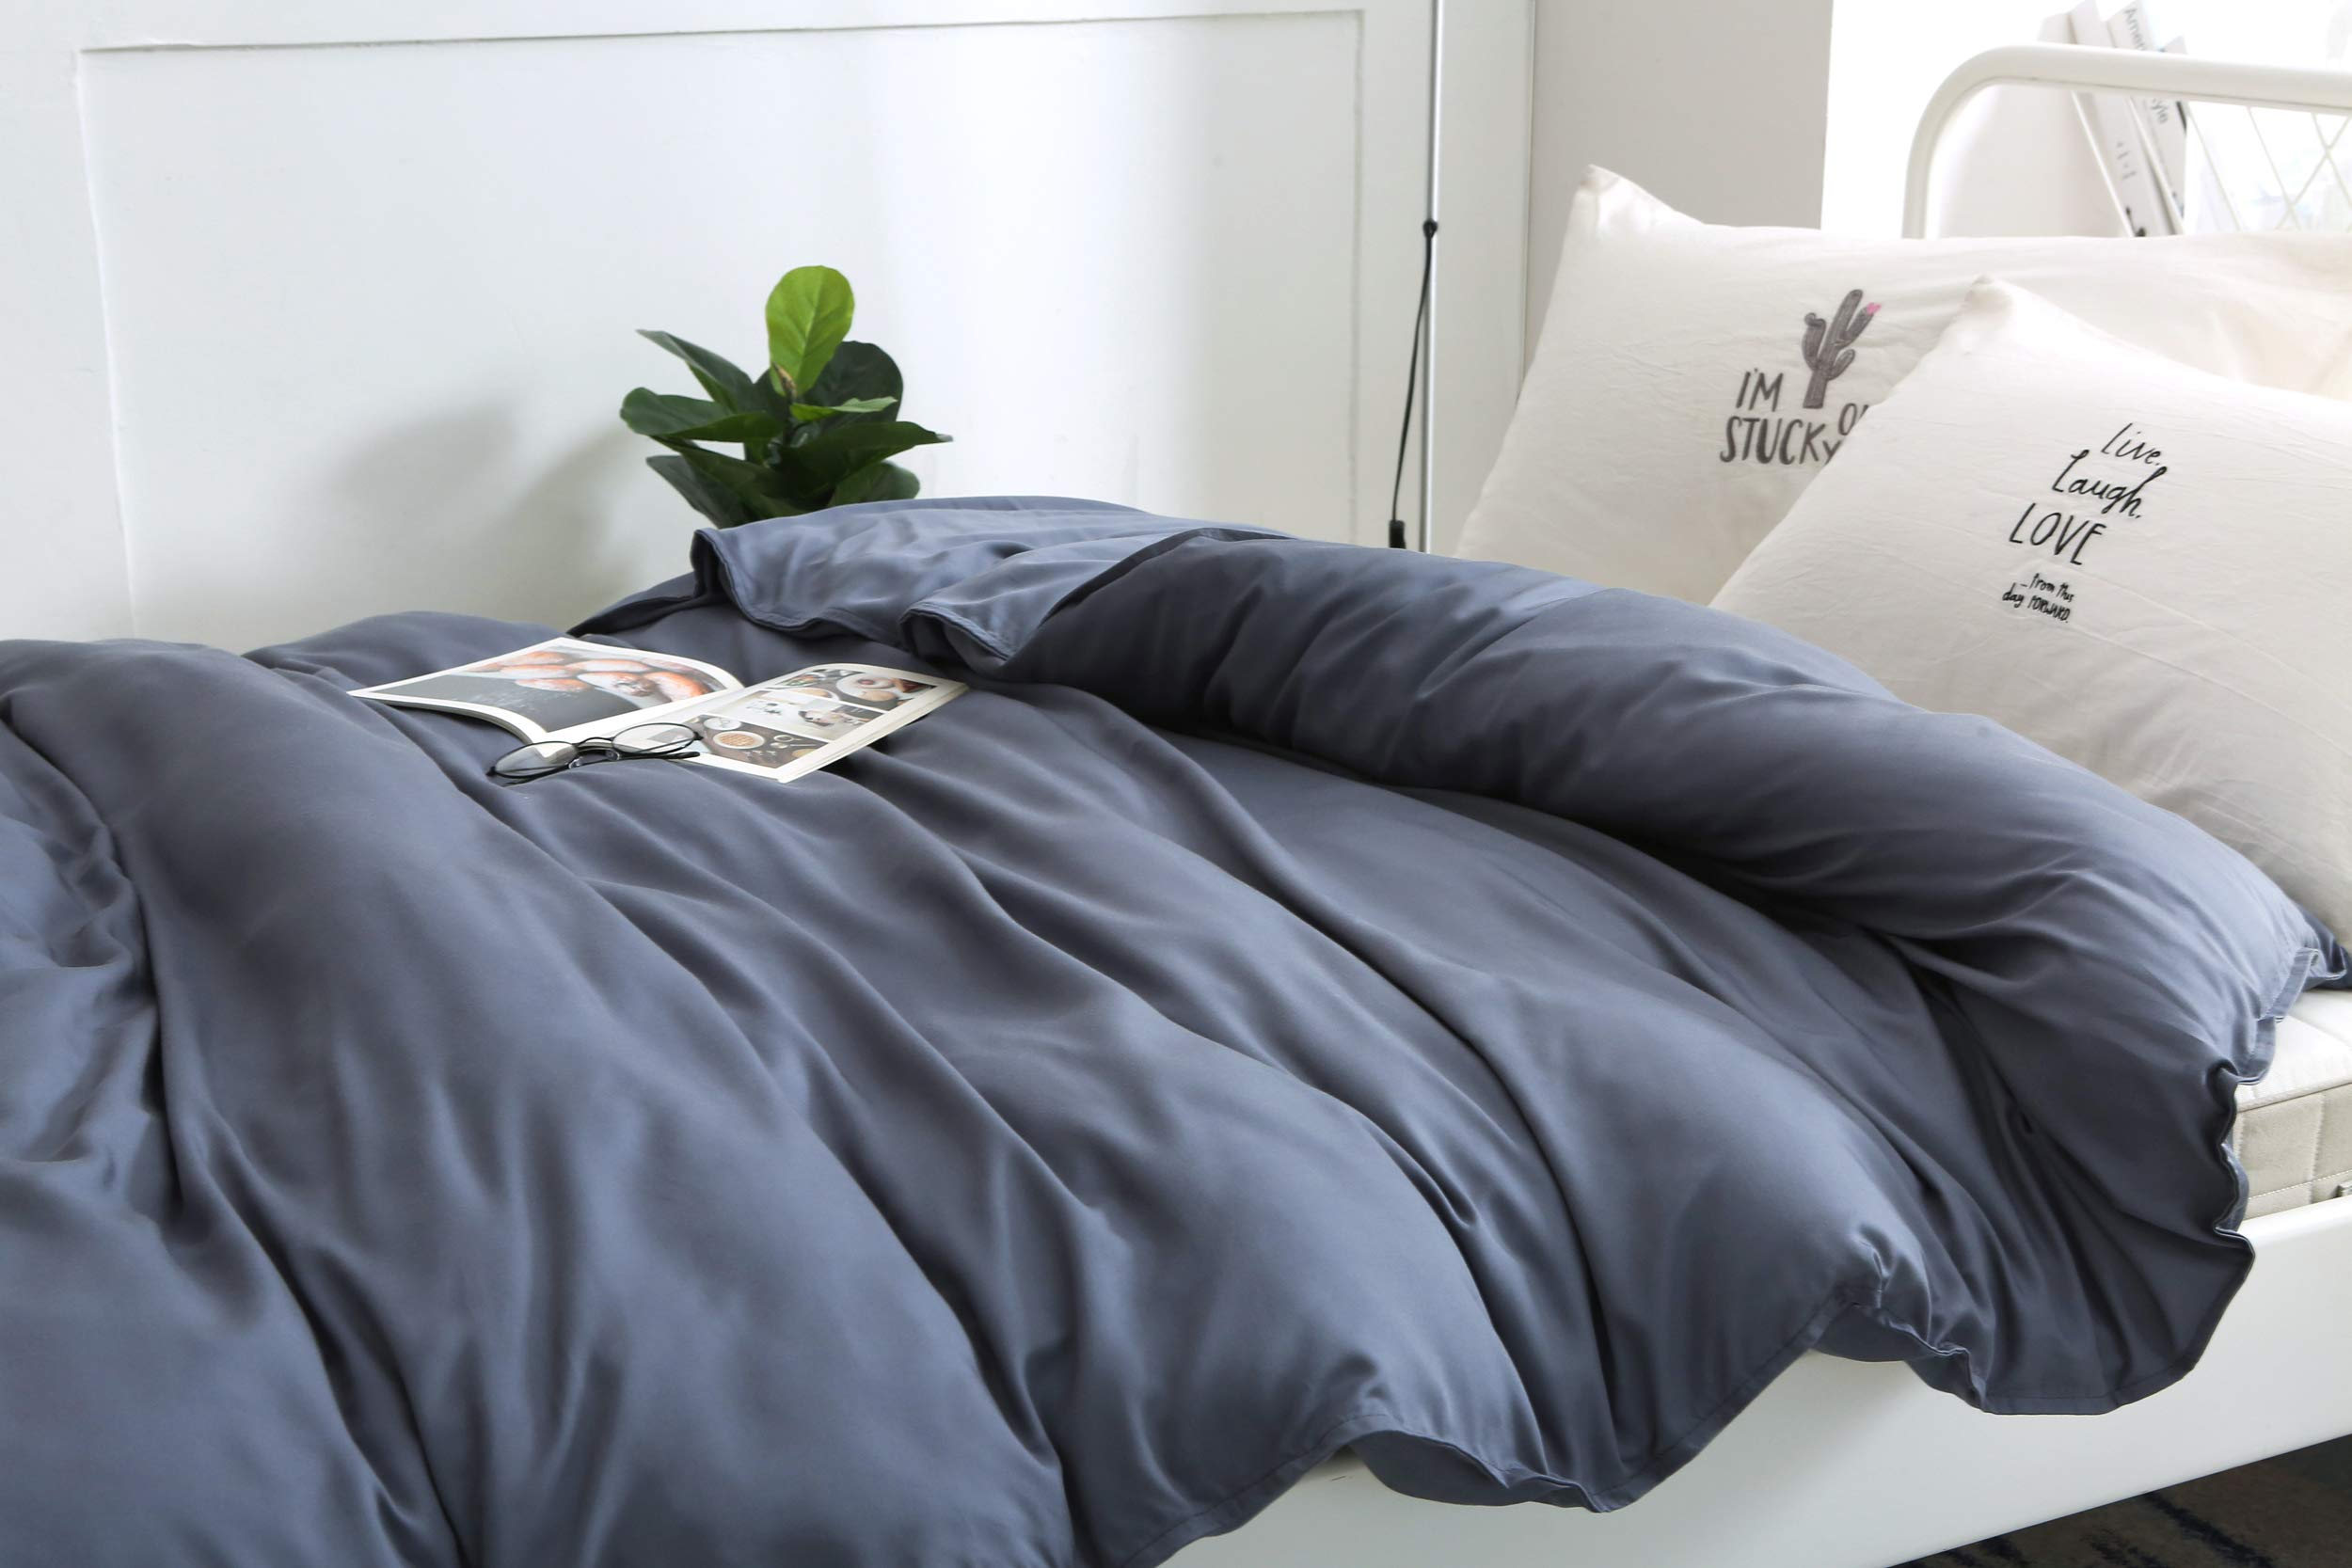 Cazlon 400 Thread Counts Bamboo Duvet Cover for Weighted Blanket 60''x80''/Slate Gray,100% Bamboo Viscose, 8 Ties/Just Duvet Cover by Cazlon